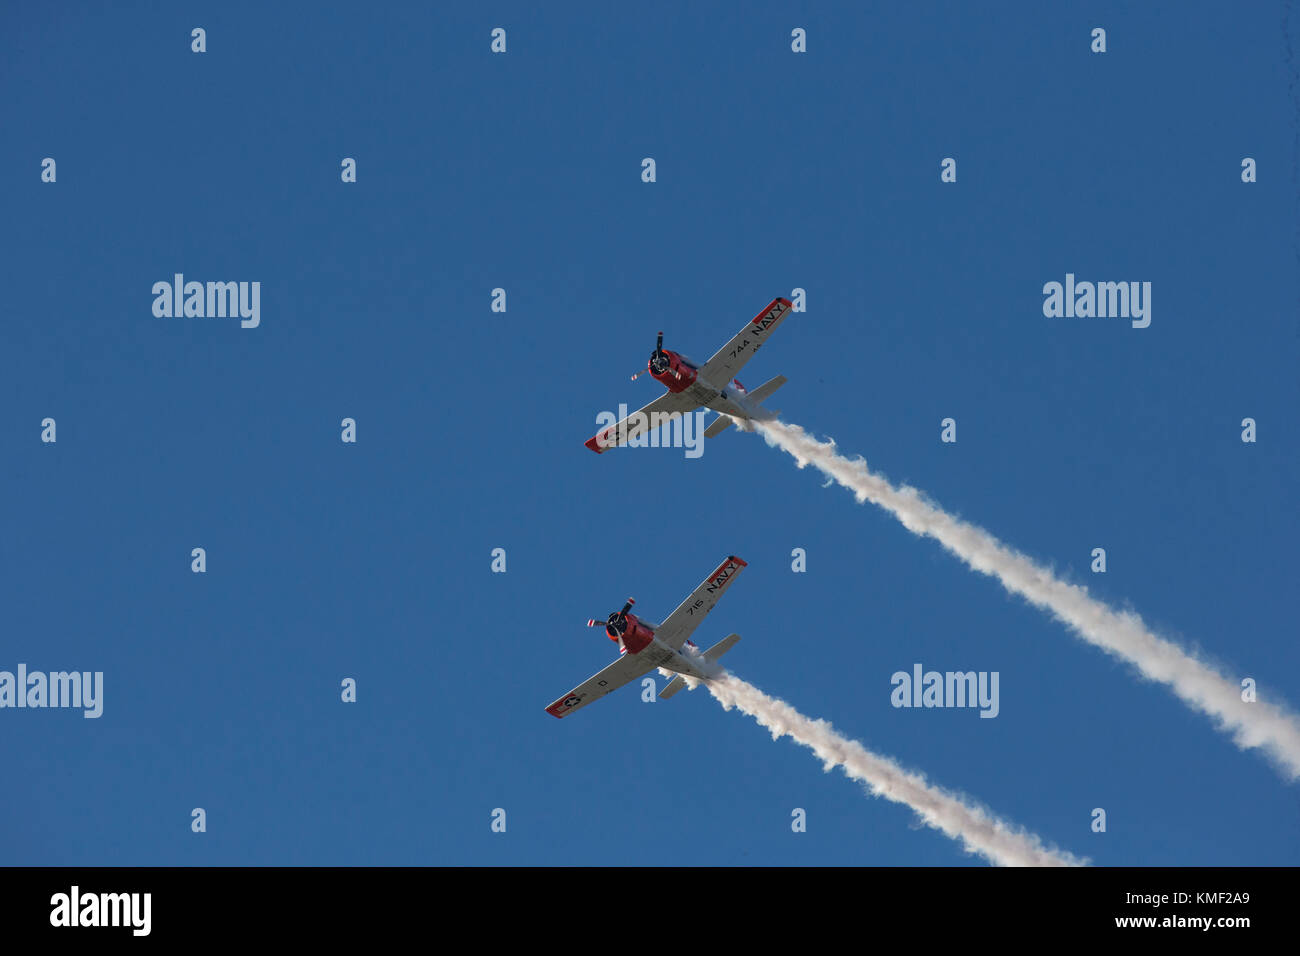 Two propeller airplanes flying together with smoke trail in deep blue sky - Stock Image